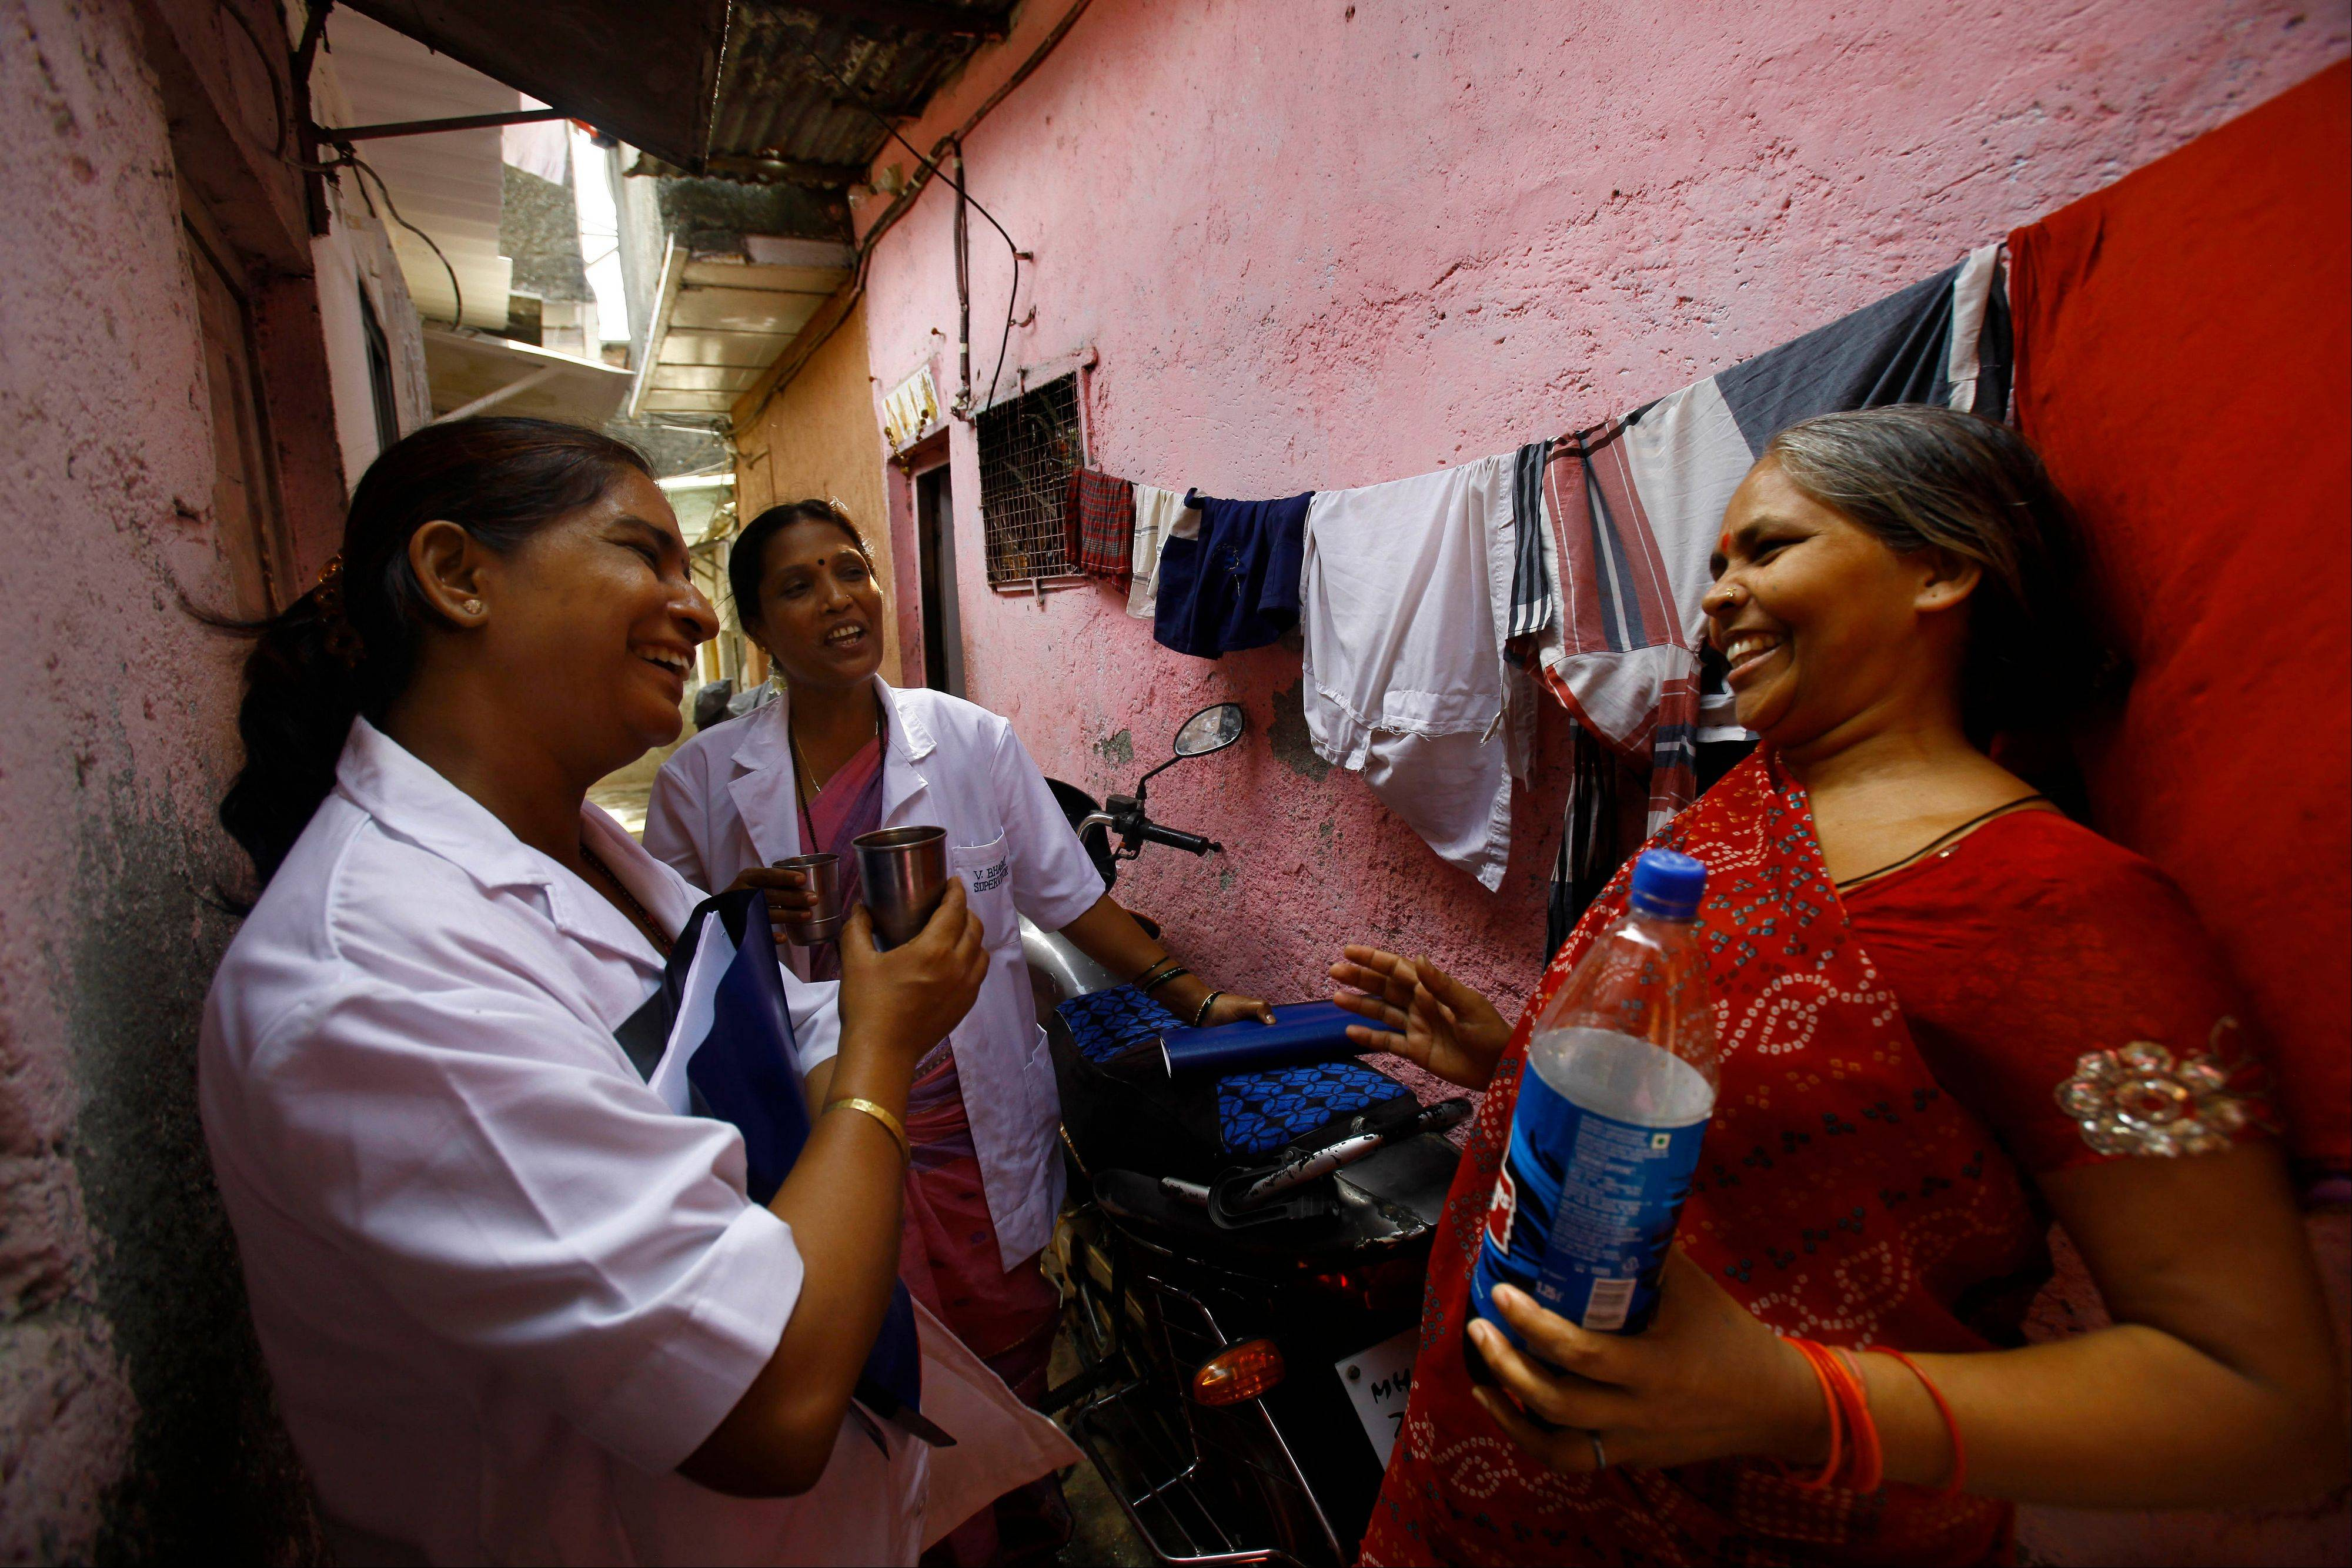 Usha Devi, right, who was suffering from cervical cancer, talks with health workers from Tata Memorial Hospital in a slum in Mumbai, India. A simple vinegar test slashed cervical cancer death rates by one-third in a remarkable study of 150,000 women in the slums of India, where the disease is the top cancer killer of women.